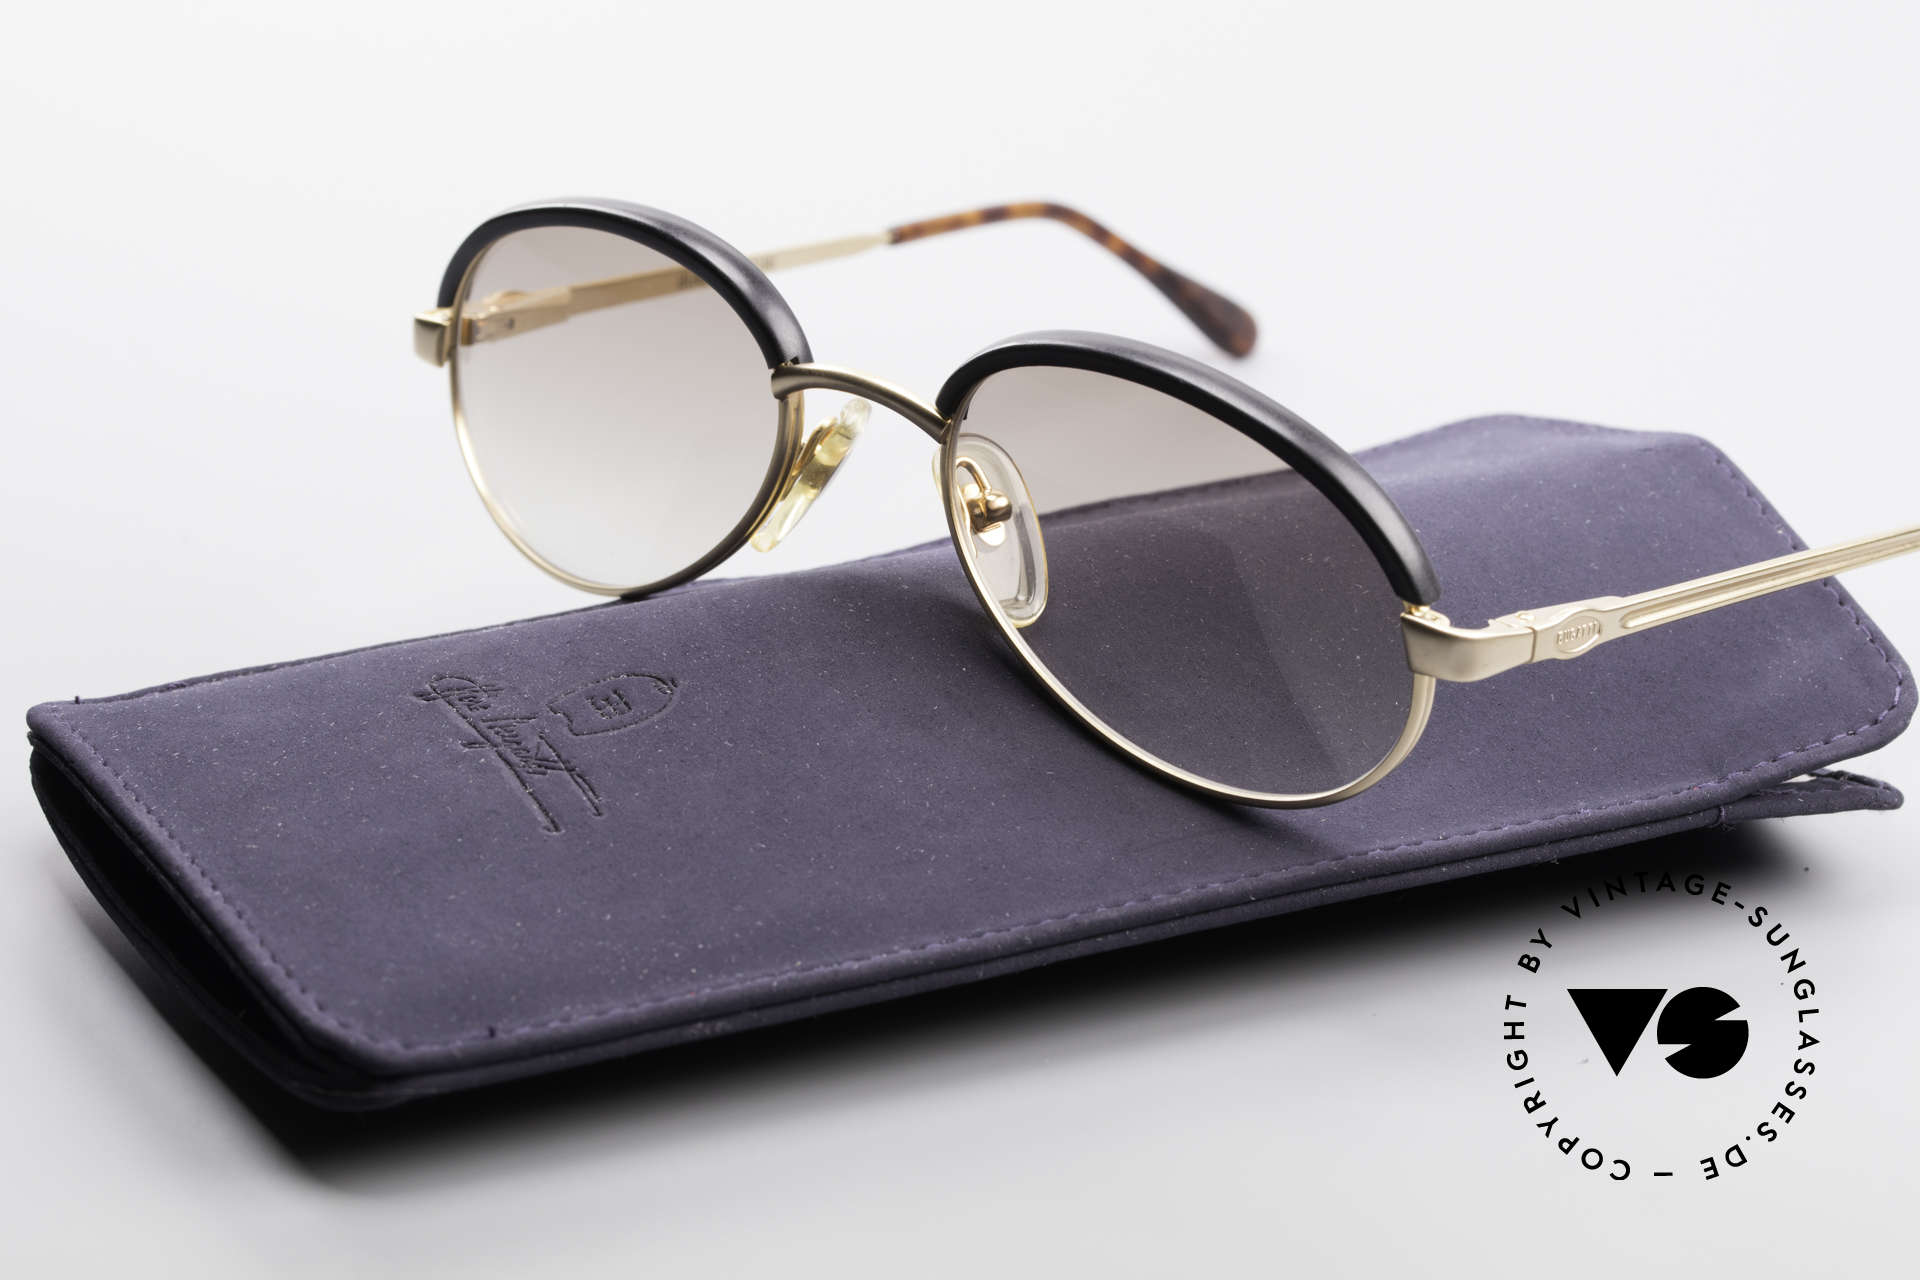 Bugatti 03180 Old Classic Bugatti Sunglasses, the frame can be glazed with lenses of any kind, Made for Men